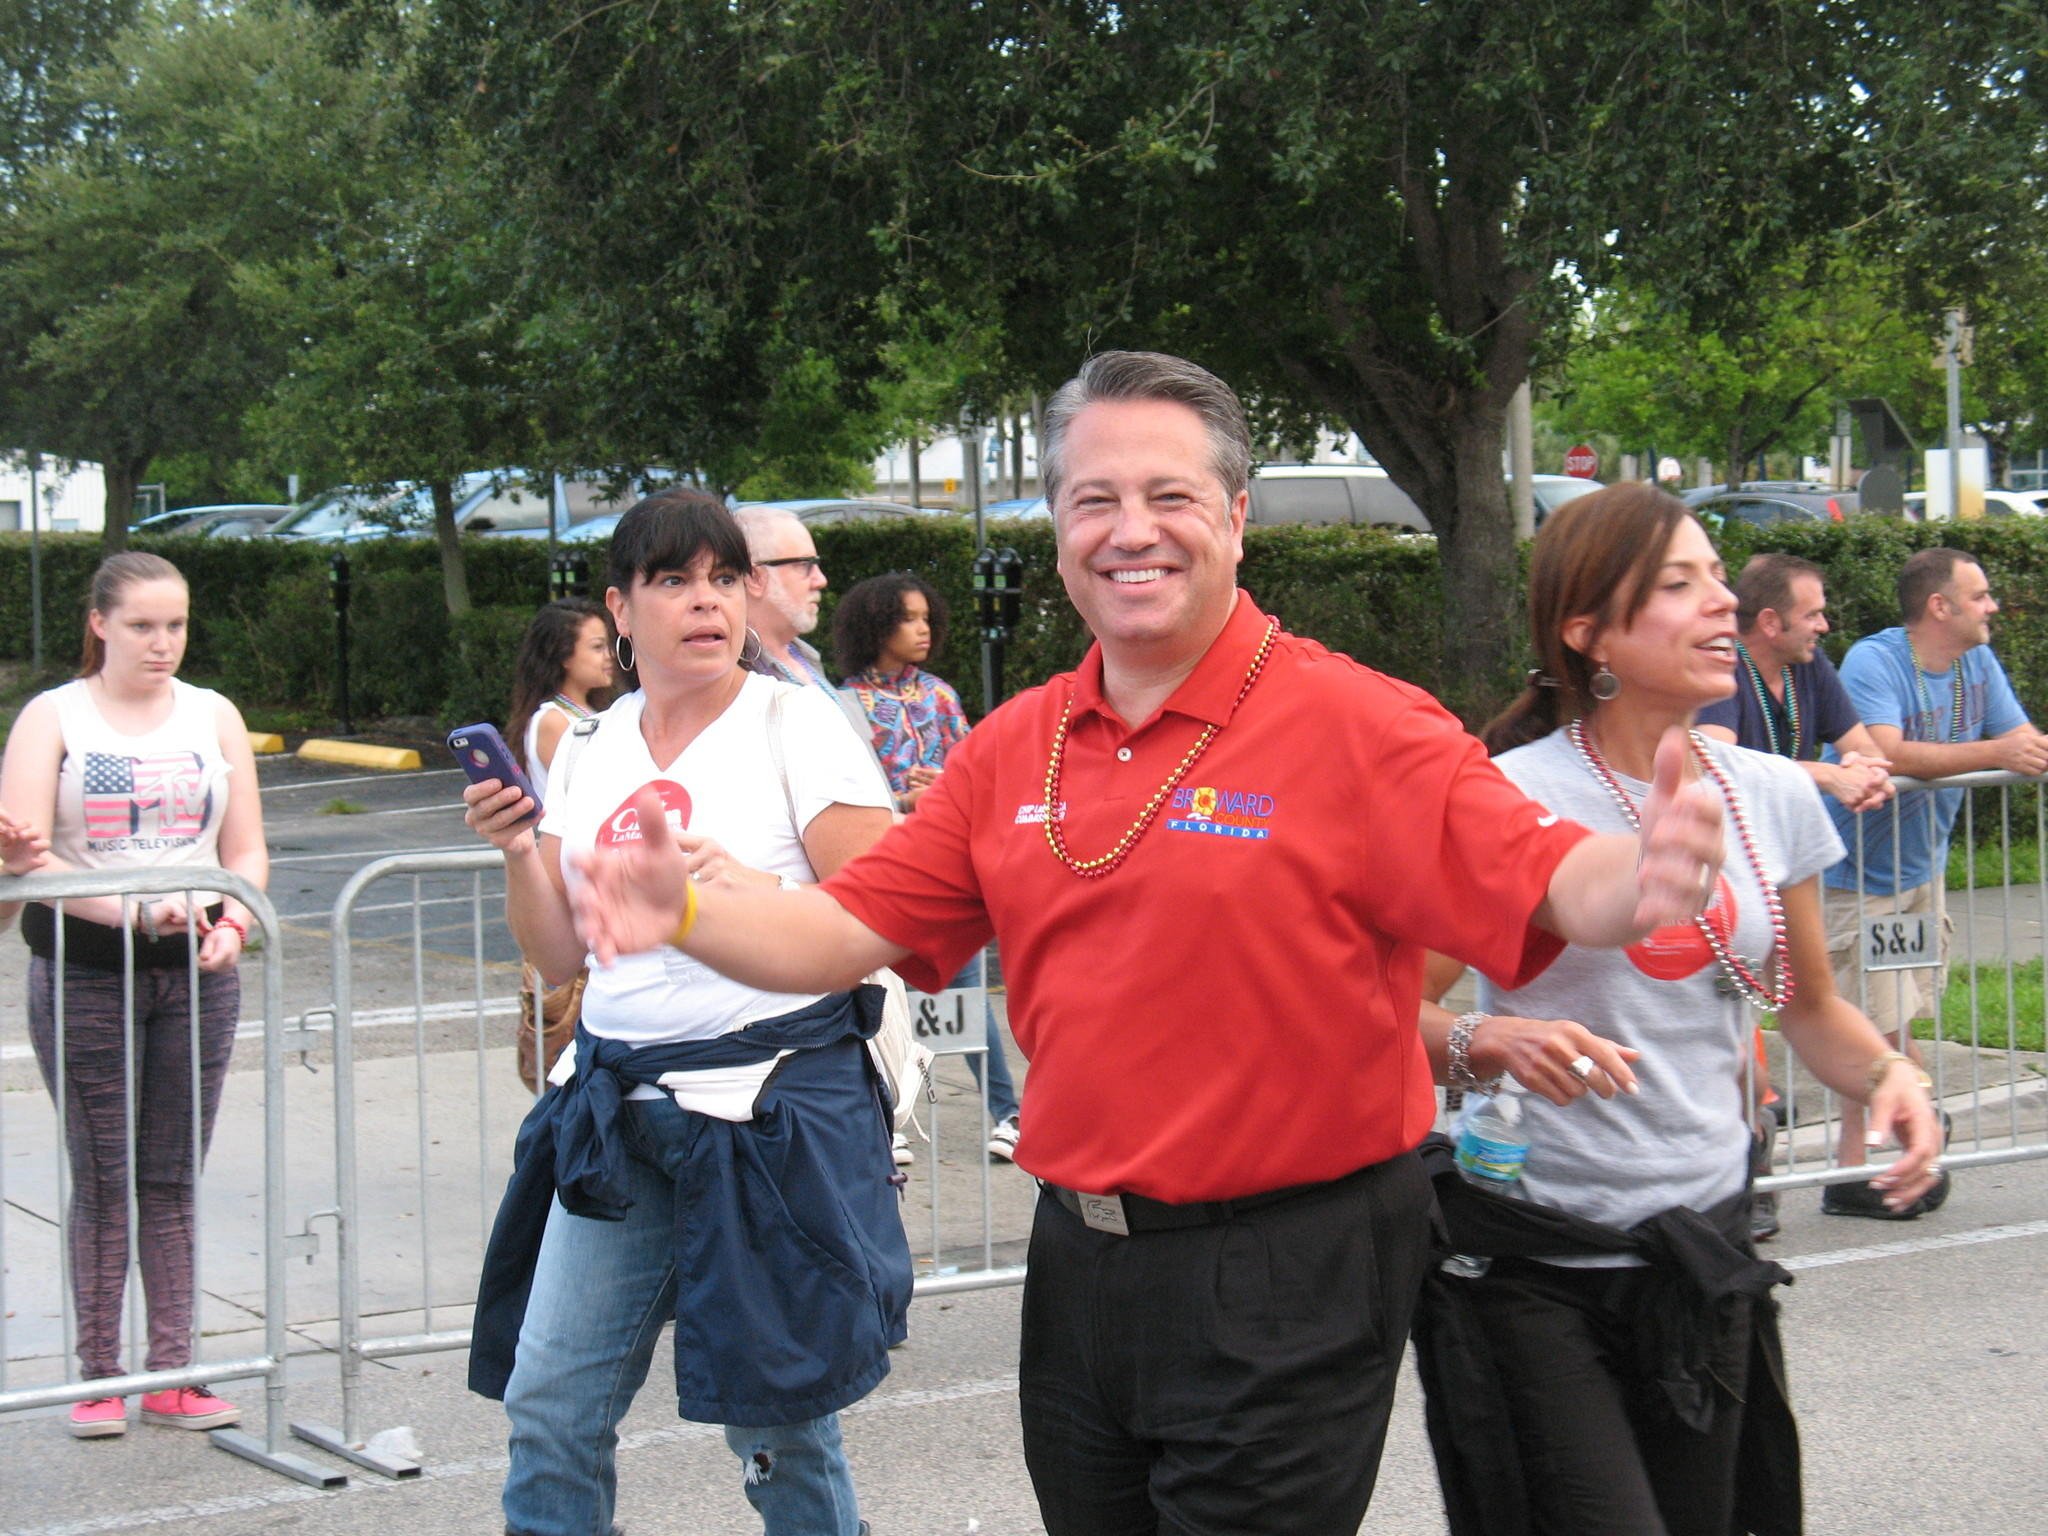 County Commissioner Chip LaMarca was a lone Republican marching in the gay pride parade in Wilton Manors on June 21, 2014. He was the only one of the nine county commissioners to participate. (Photo by Anthony Man/Sun Sentinel.)